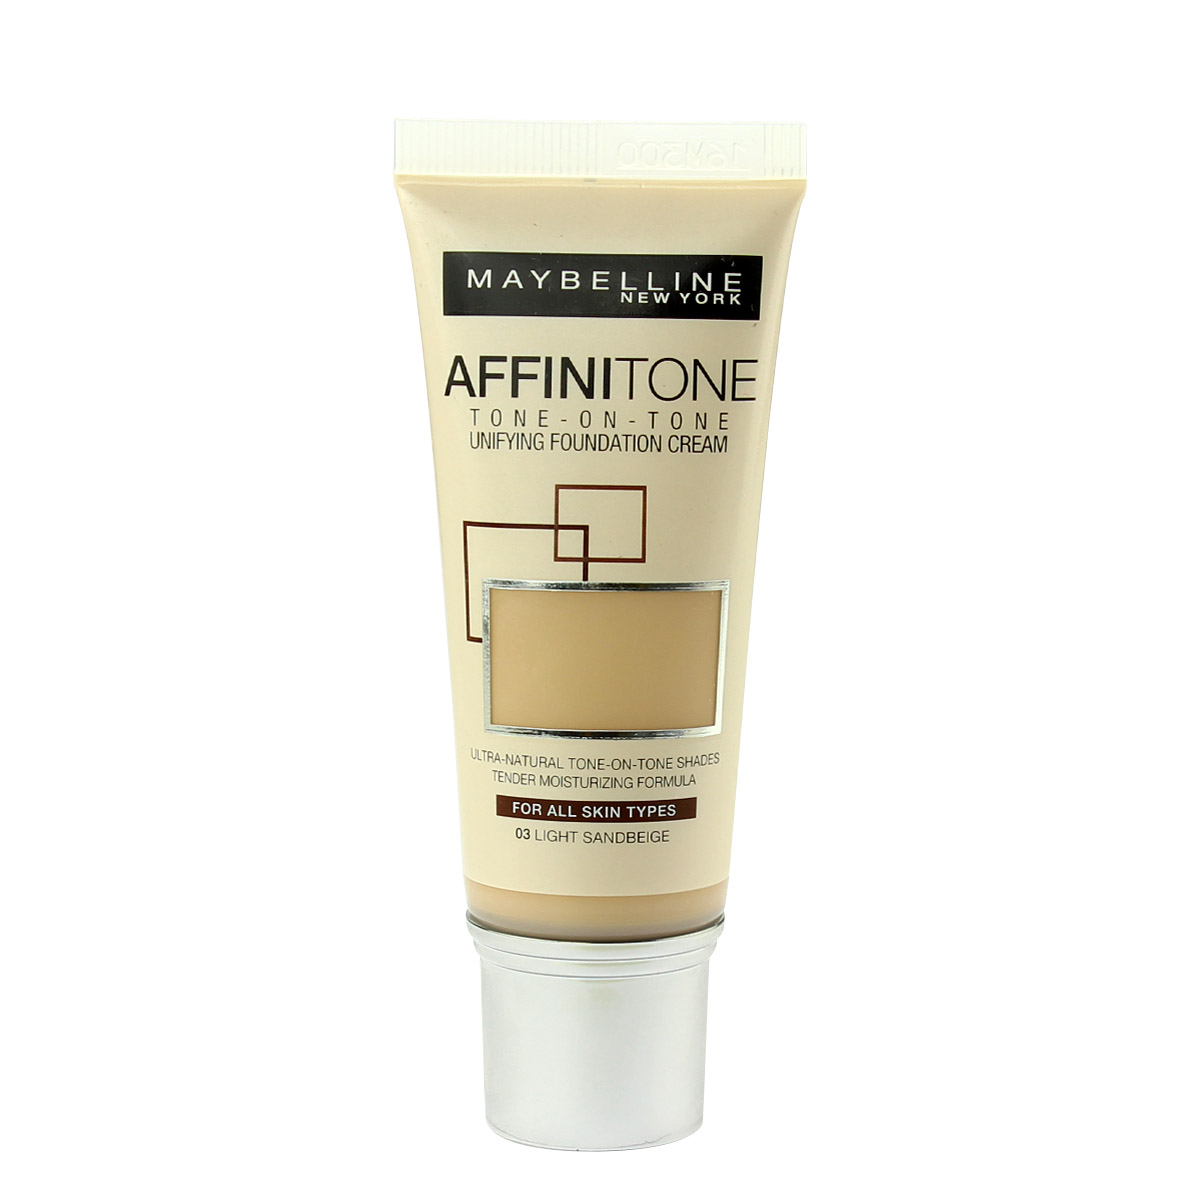 Maybelline Affinitone Unifying Foundation Cream (03 Light Sand Beige) 30 ml